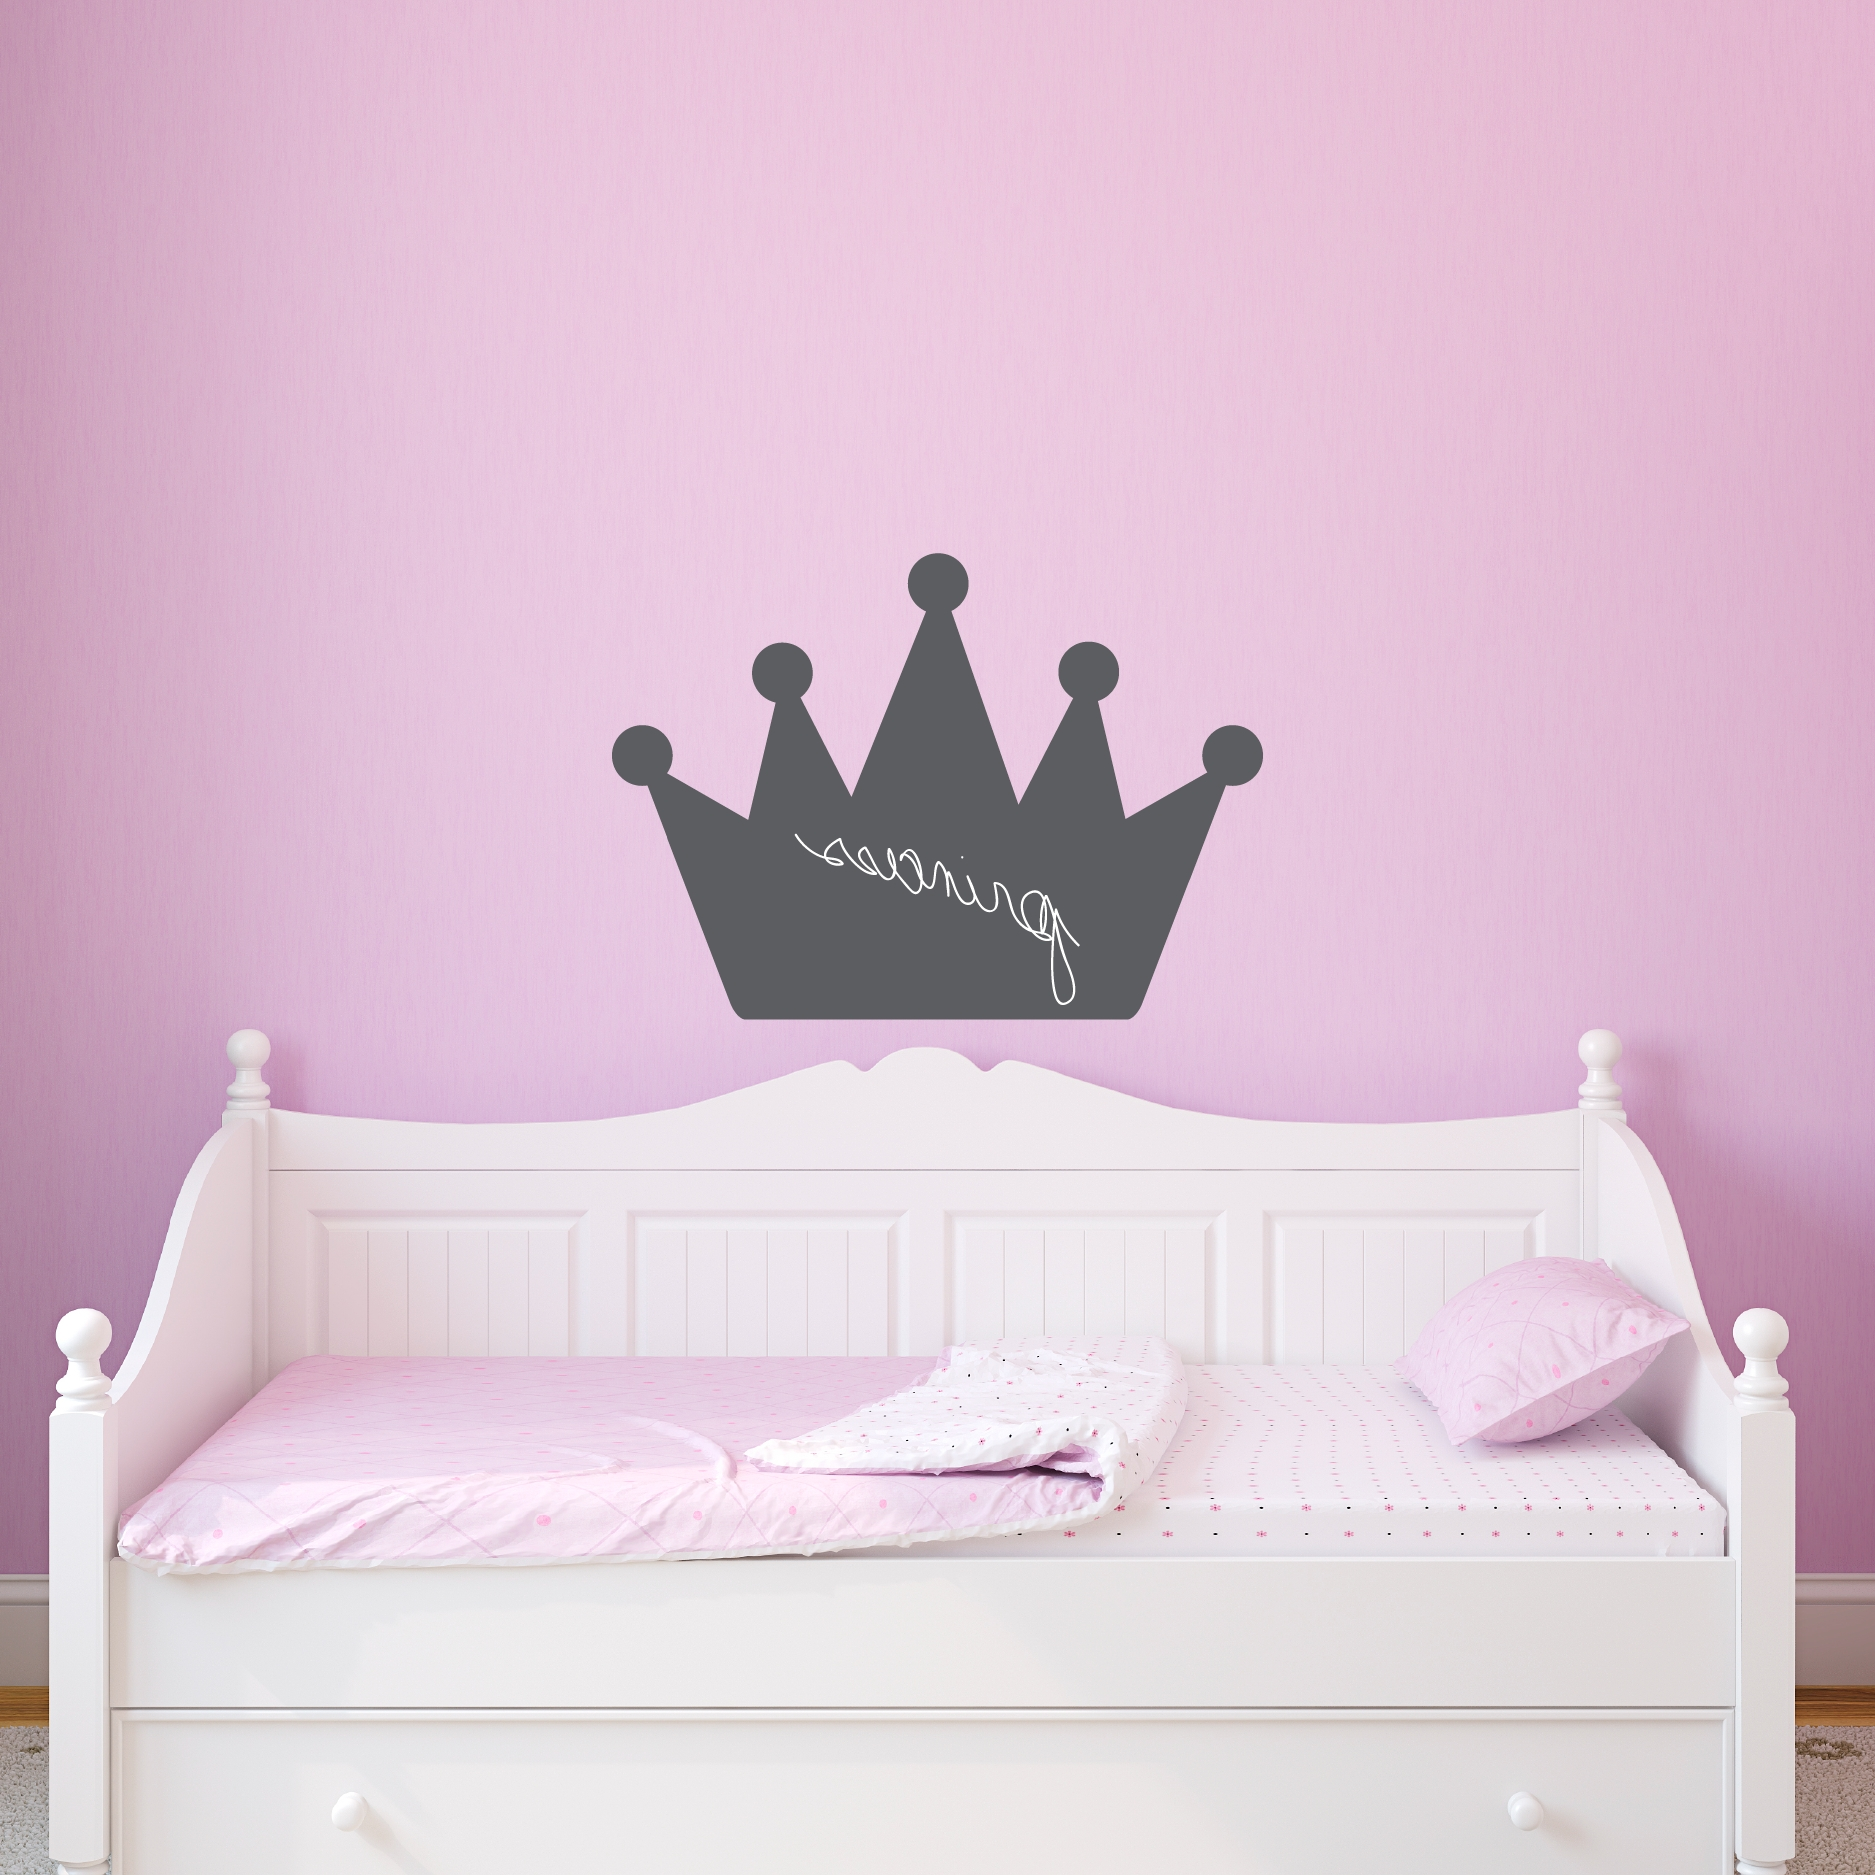 Princess Crown Wall Art Pertaining To Most Up To Date Chalkboard Princess Crown Wall Quotes™ Art Decal (View 4 of 15)